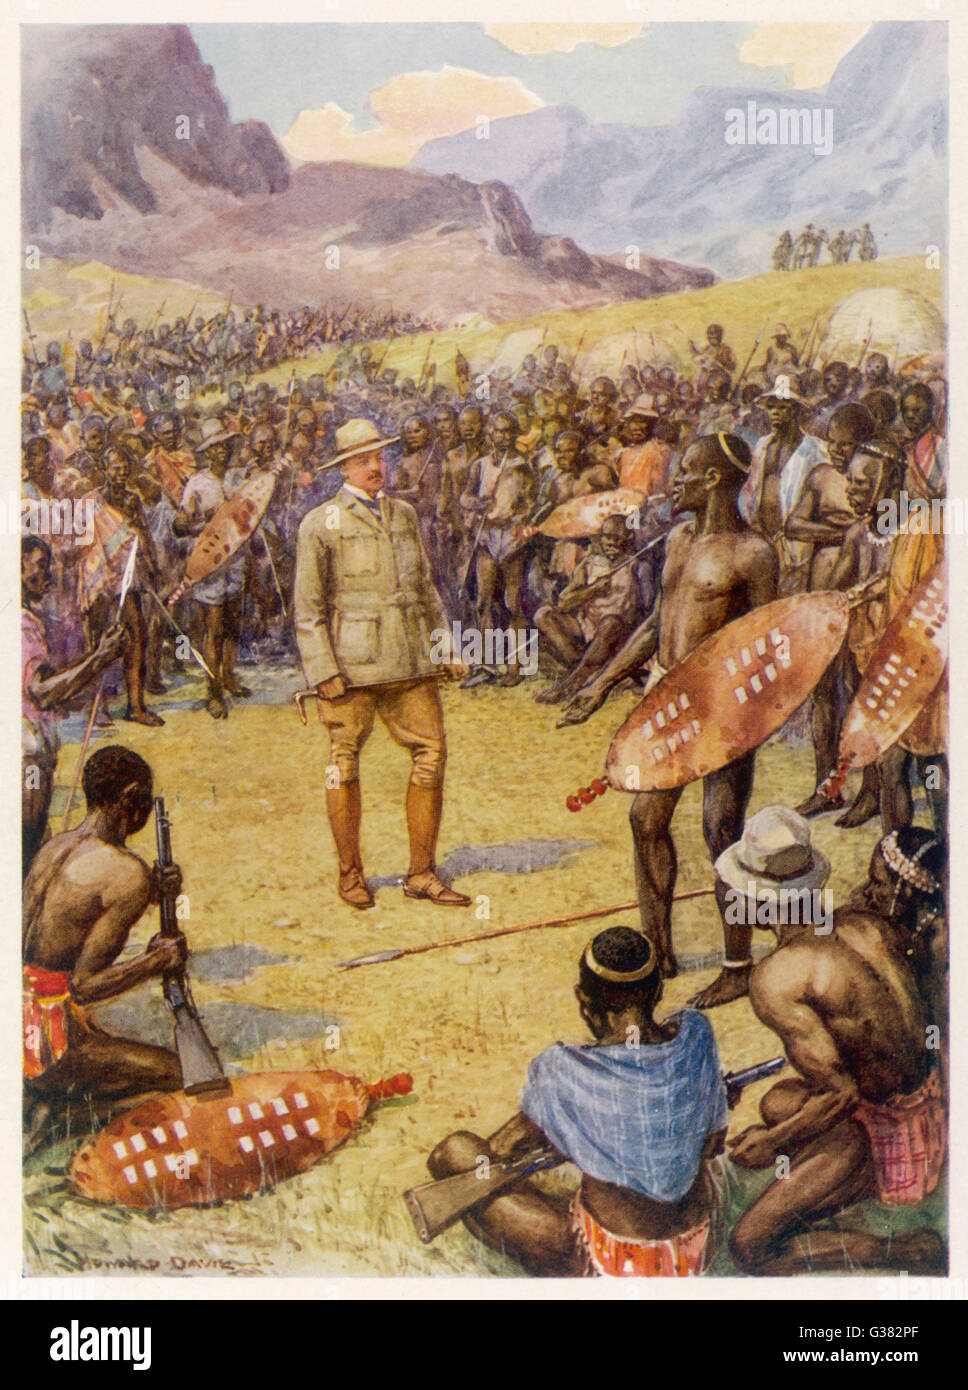 CECIL RHODES Statesman, entrepreneur and  imperialist in South Africa, making peace with the  Matabele, 1896    Stock Photo